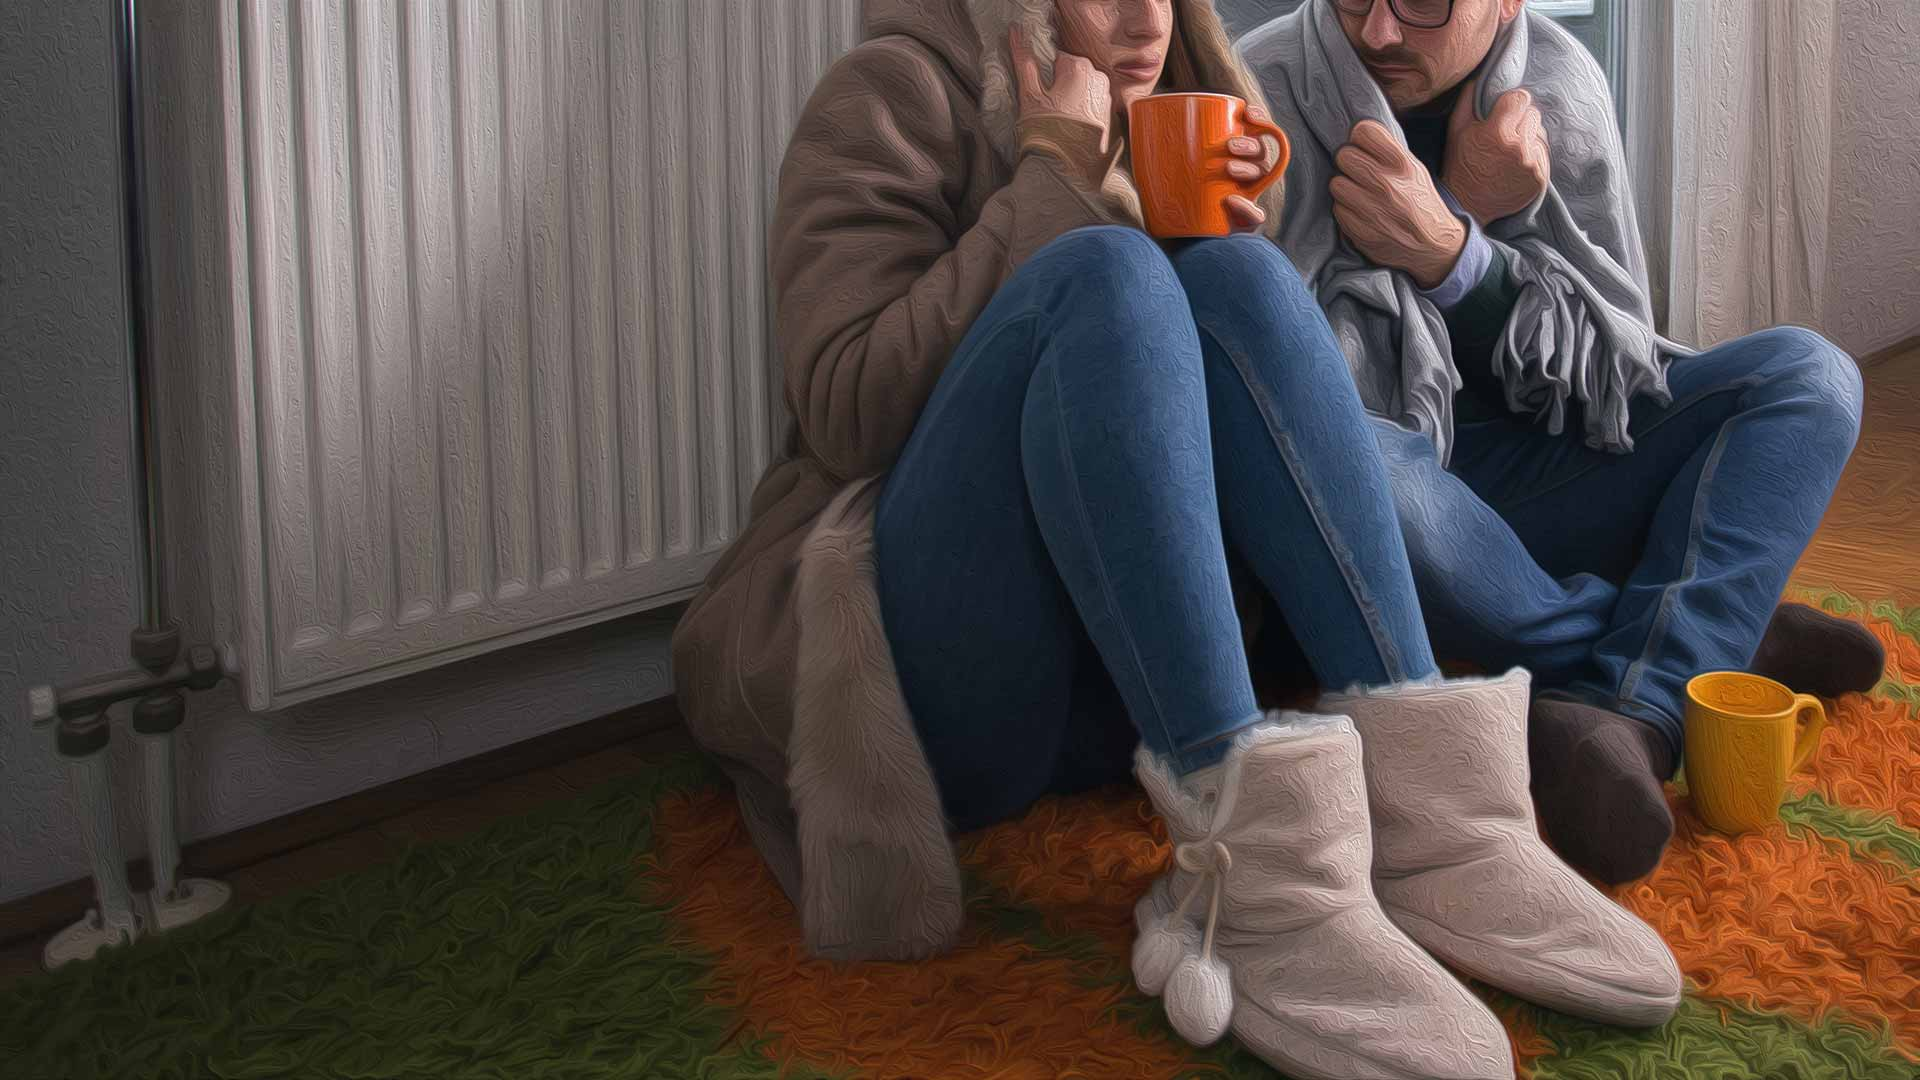 Cold couple sitting near radiator, bundled up and trying to get warm